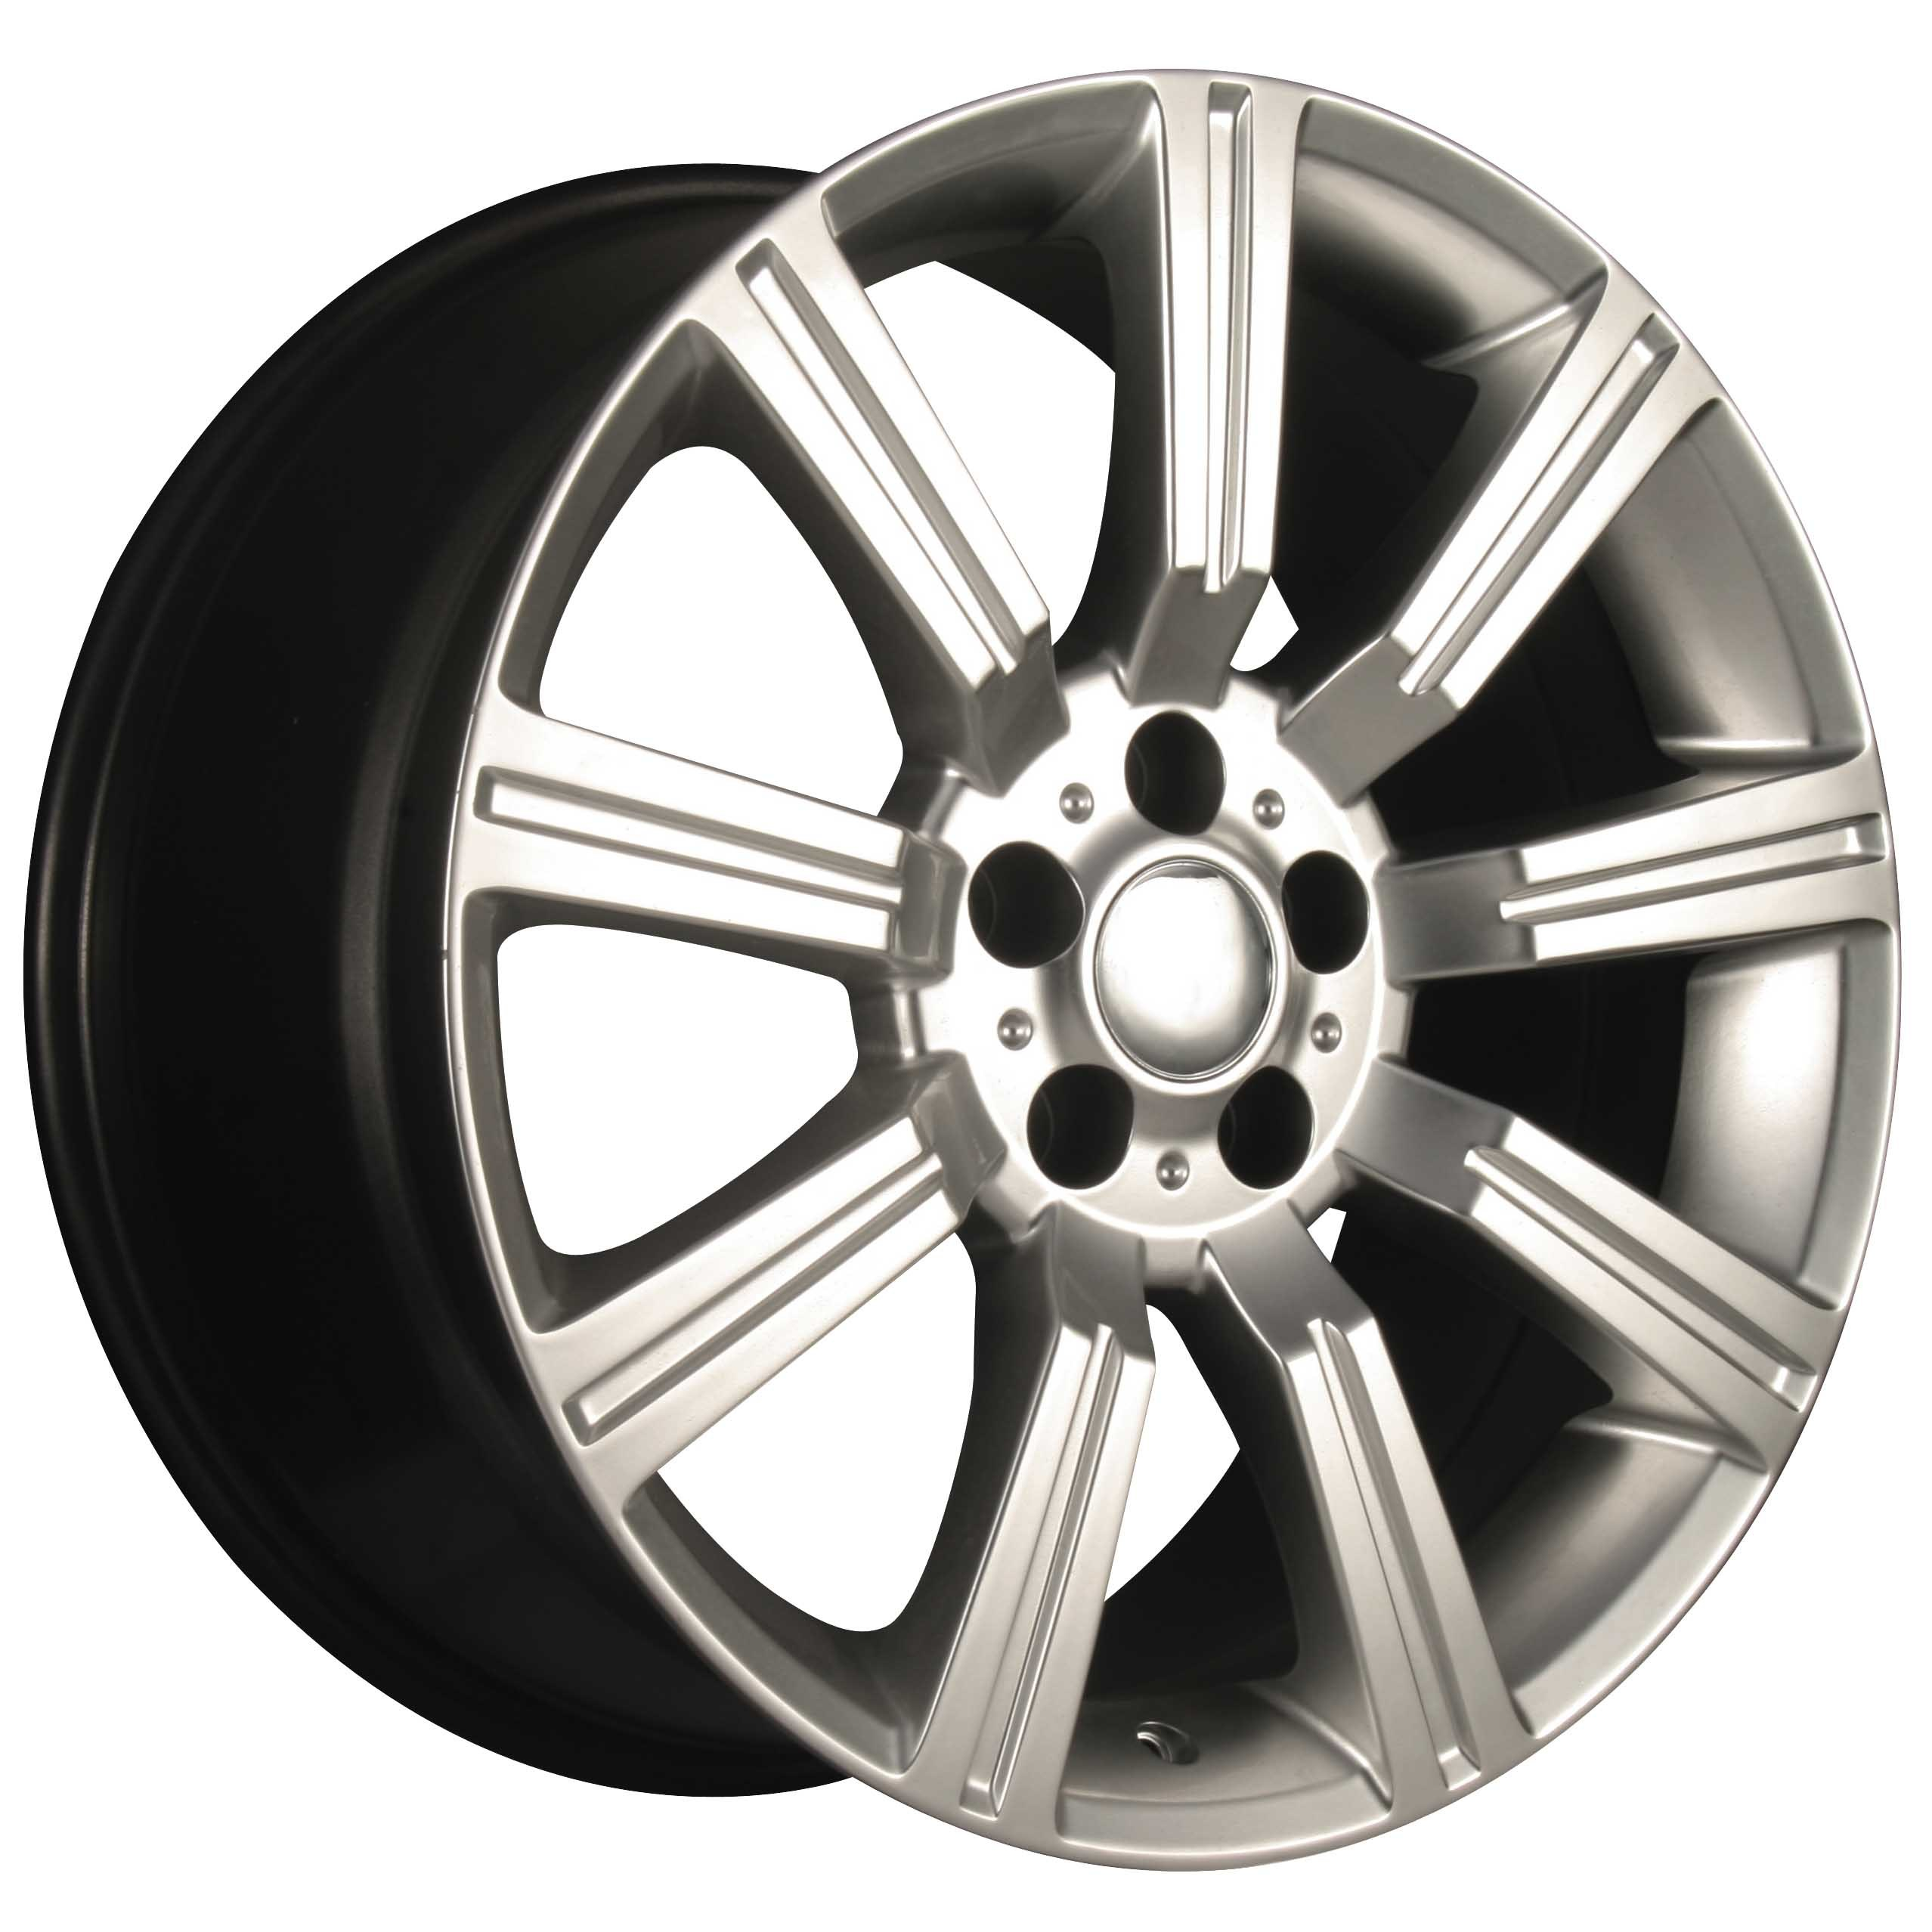 20inch and 22inch Alloy Wheel Replica Wheel for Landrover Supercharged Range Rover 2006